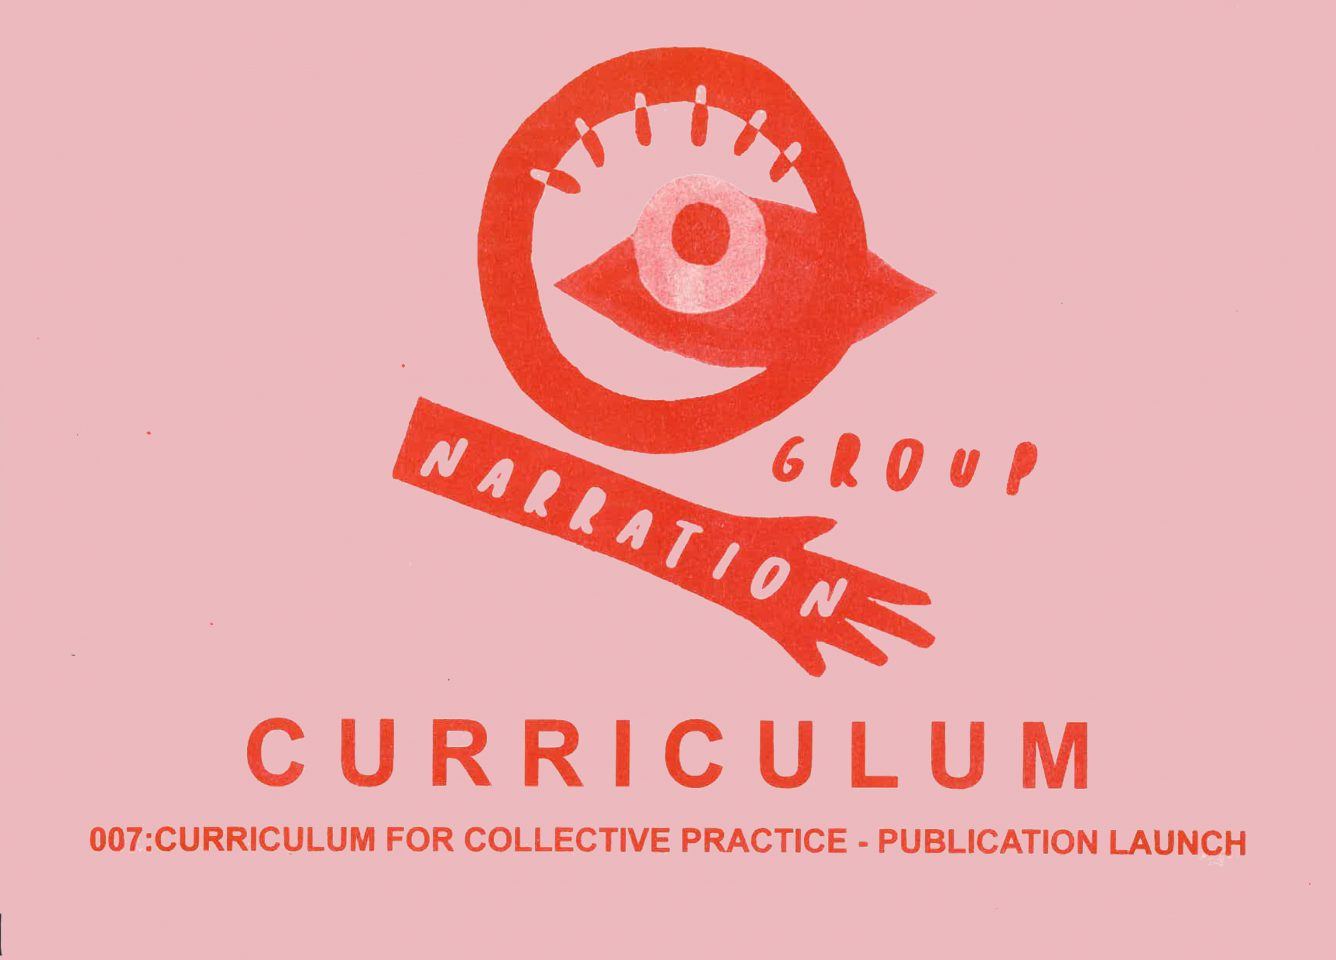 CURRICULUM 007: Curriculum for collective practice: Publication Launch